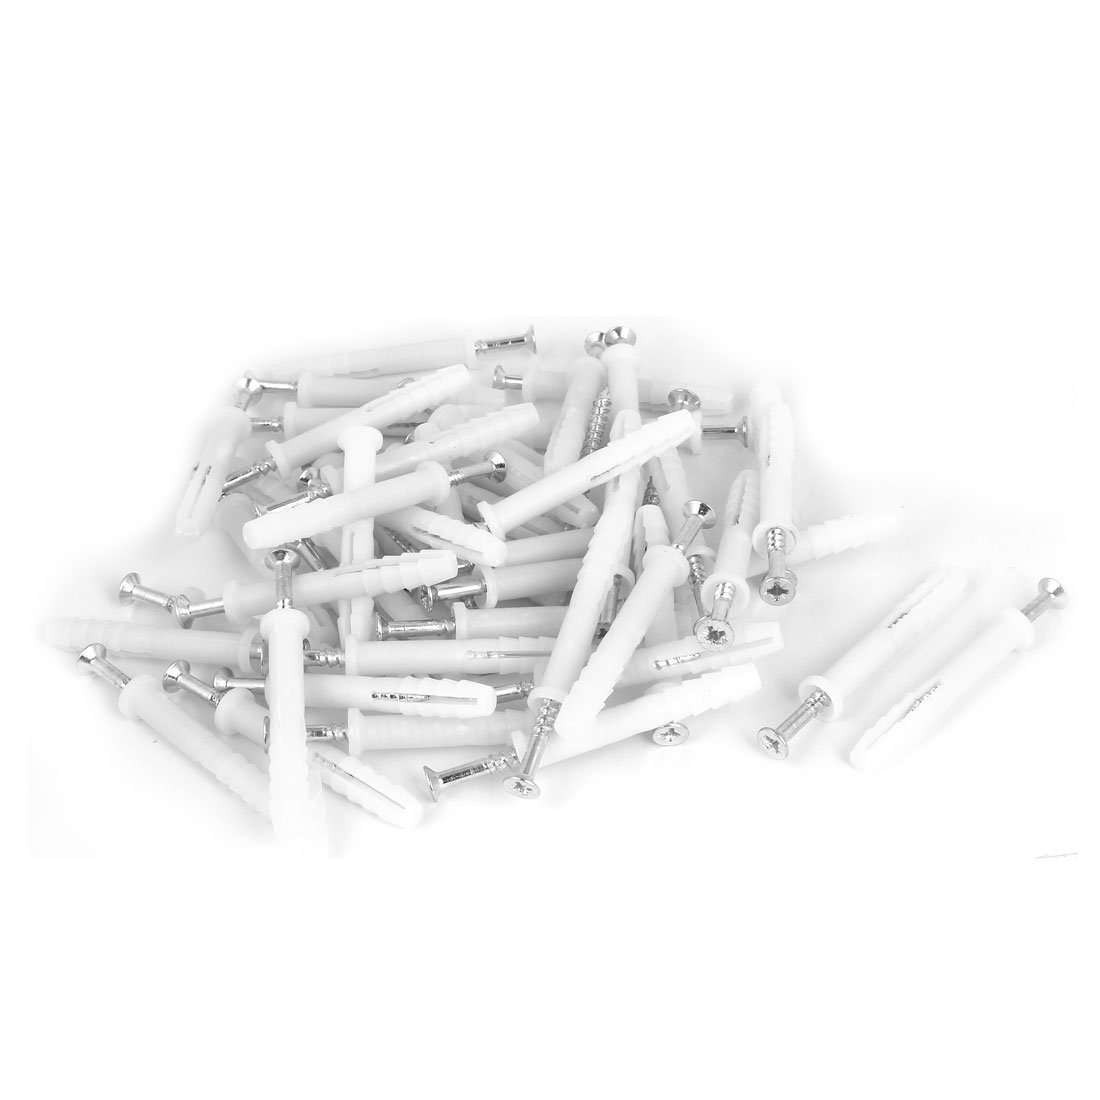 uxcell 8mm x 60mm Plastic Expansion Anchor Wall Plugs White 50pcs w Screws a16080100ux0169